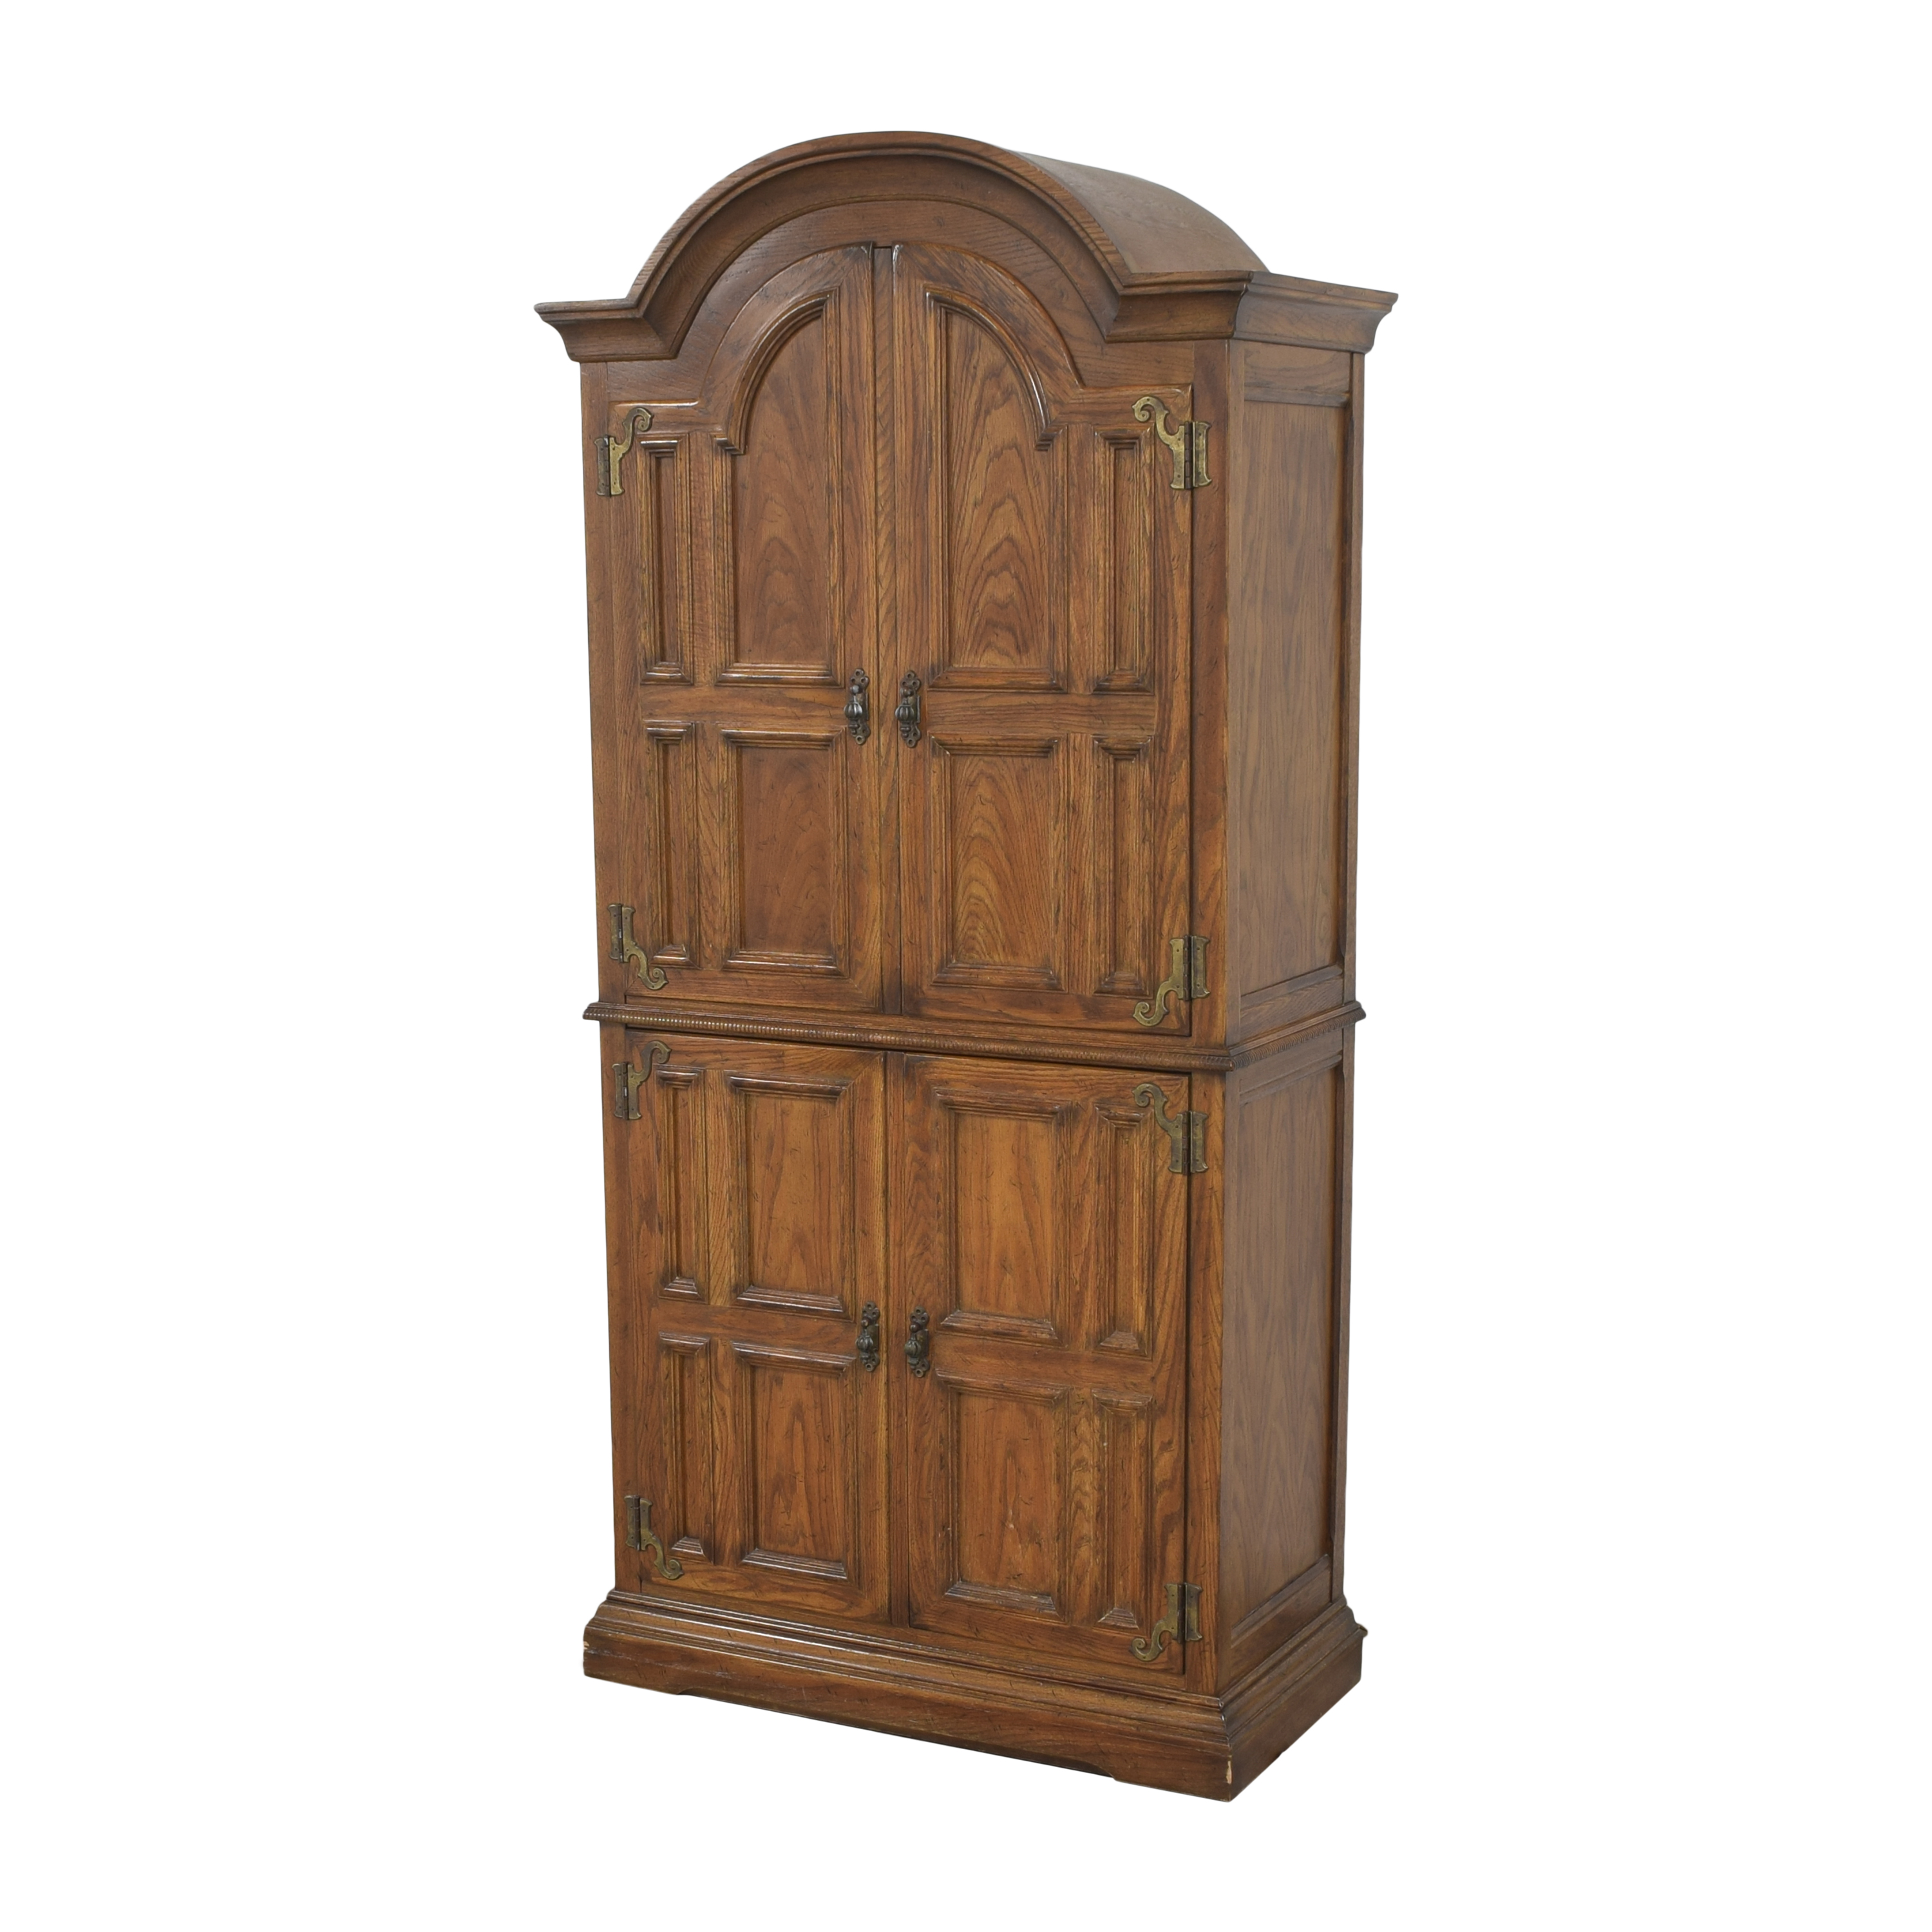 Drexel Country French Armoire / Wardrobes & Armoires